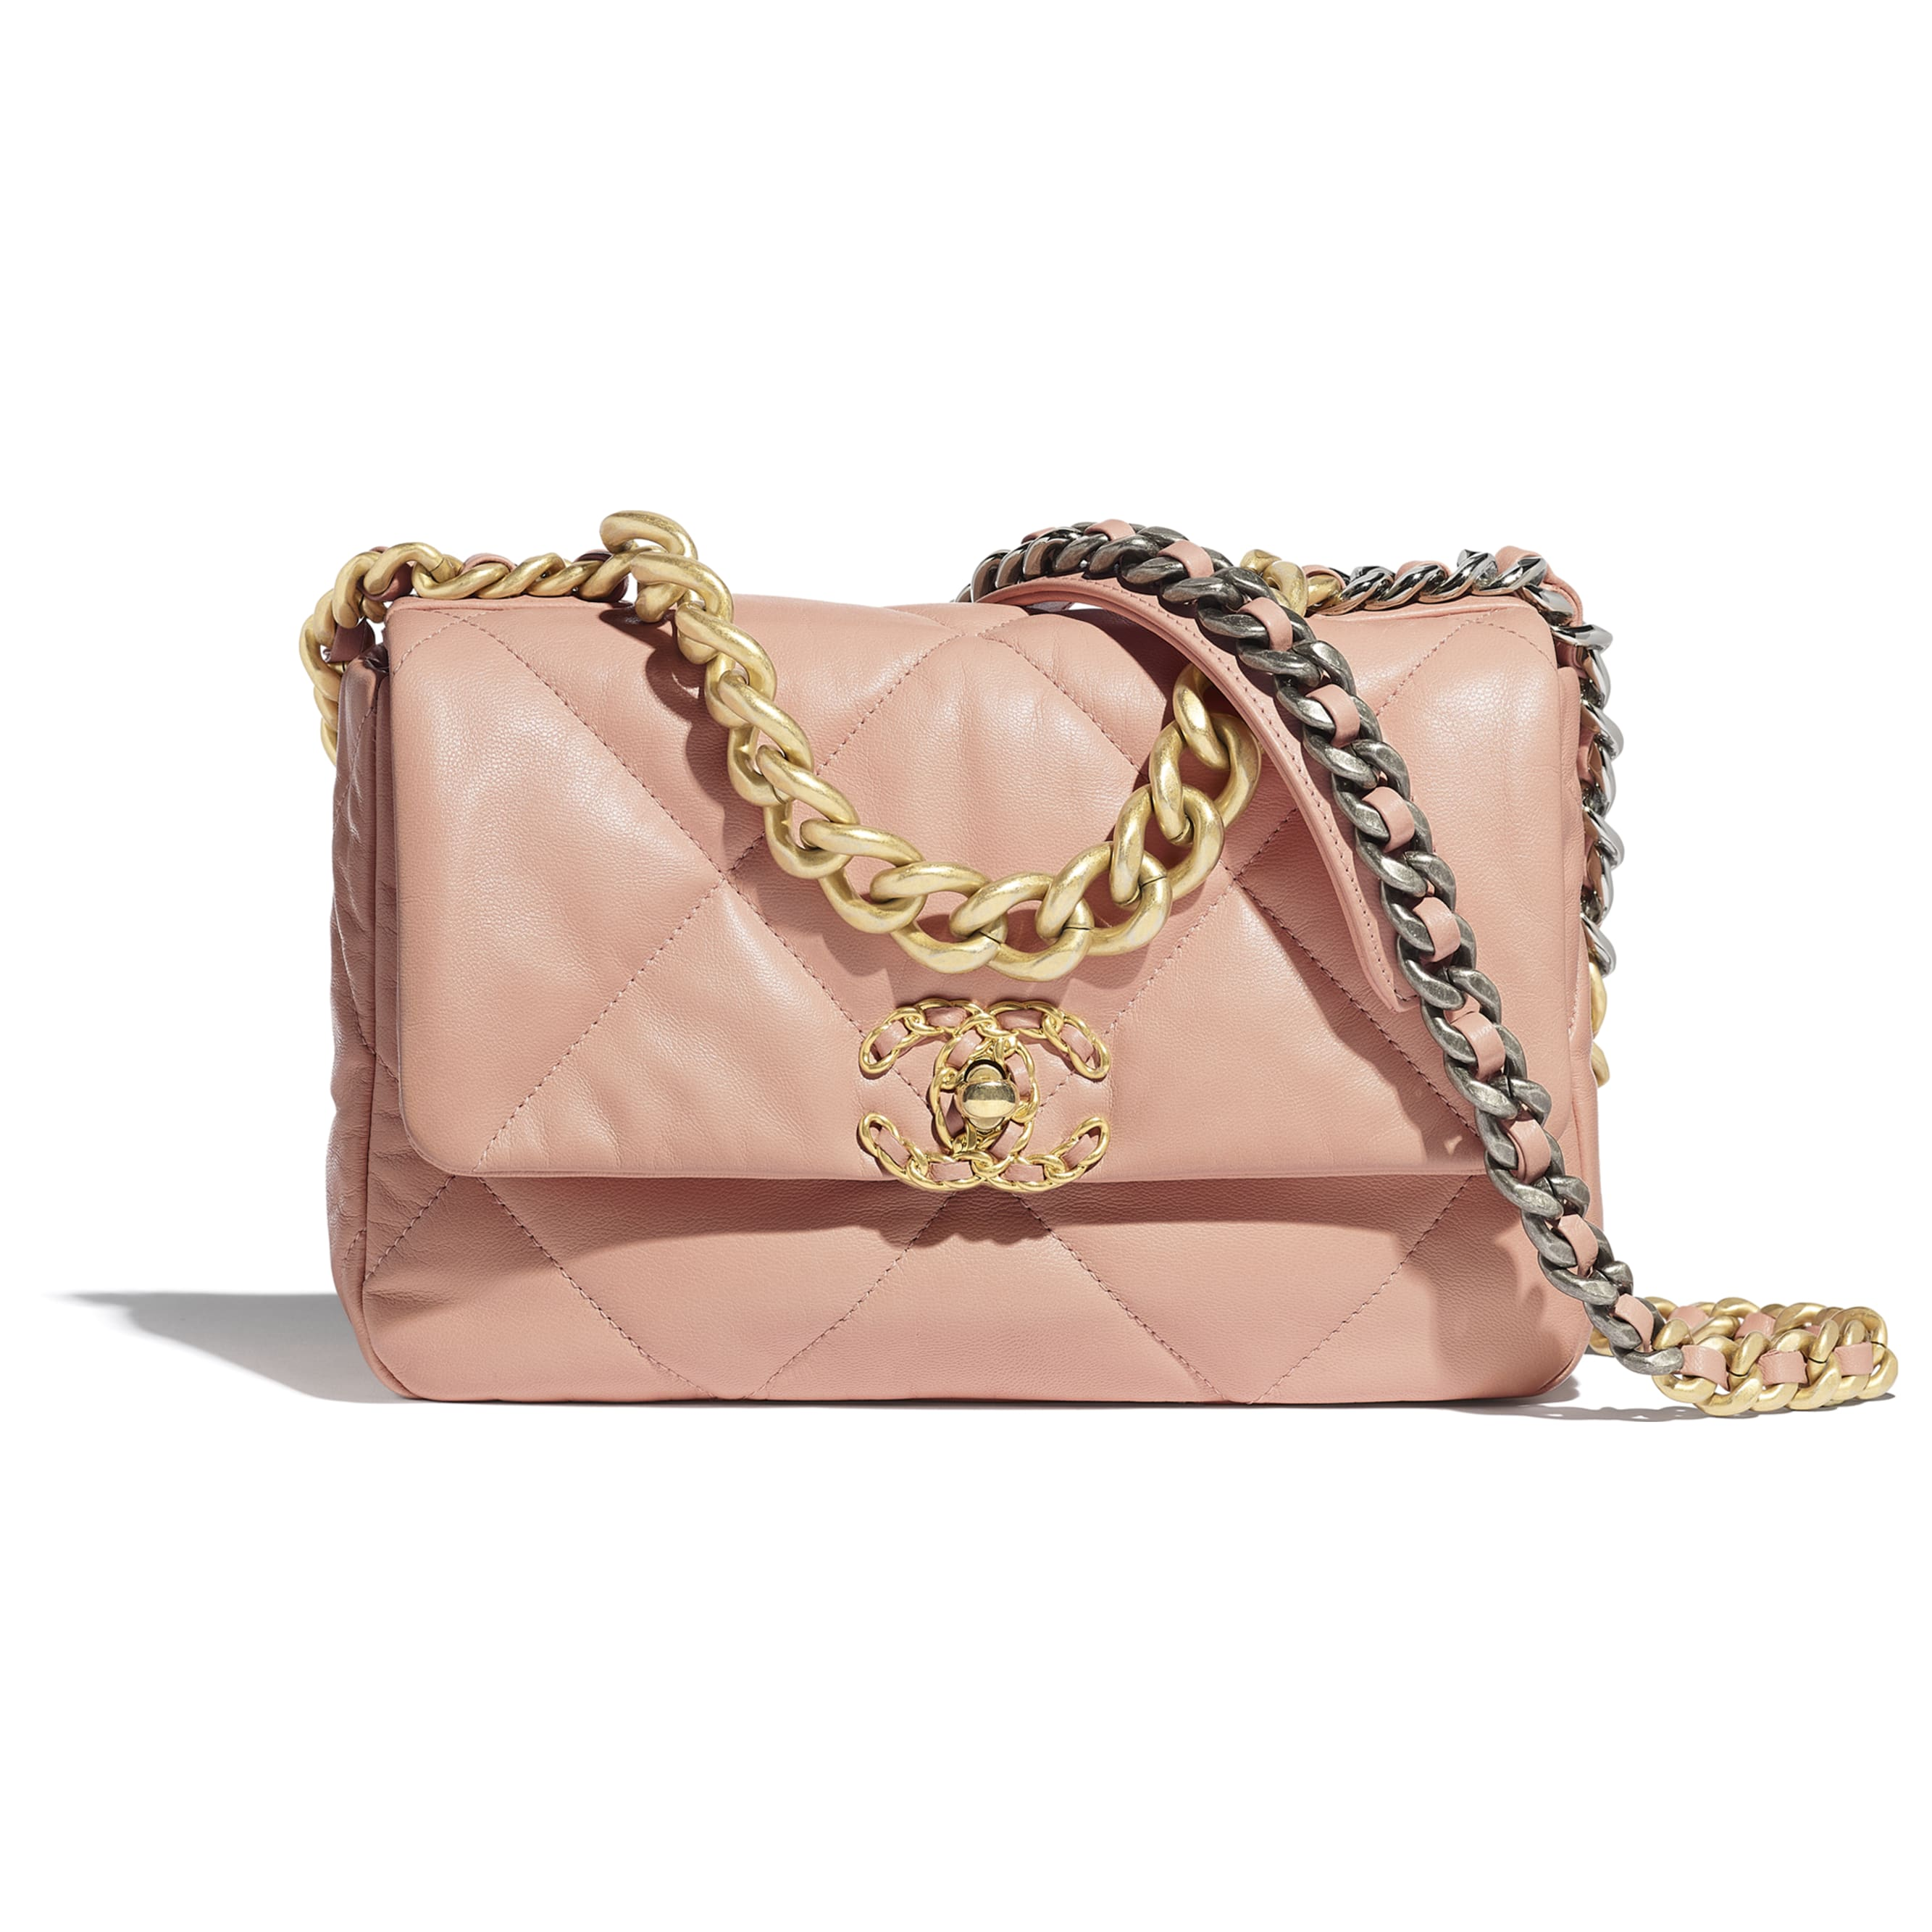 CHANEL 19 Flap Bag - Light Pink - Goatskin, Gold-Tone, Silver-Tone & Ruthenium-Finish Metal - Default view - see standard sized version